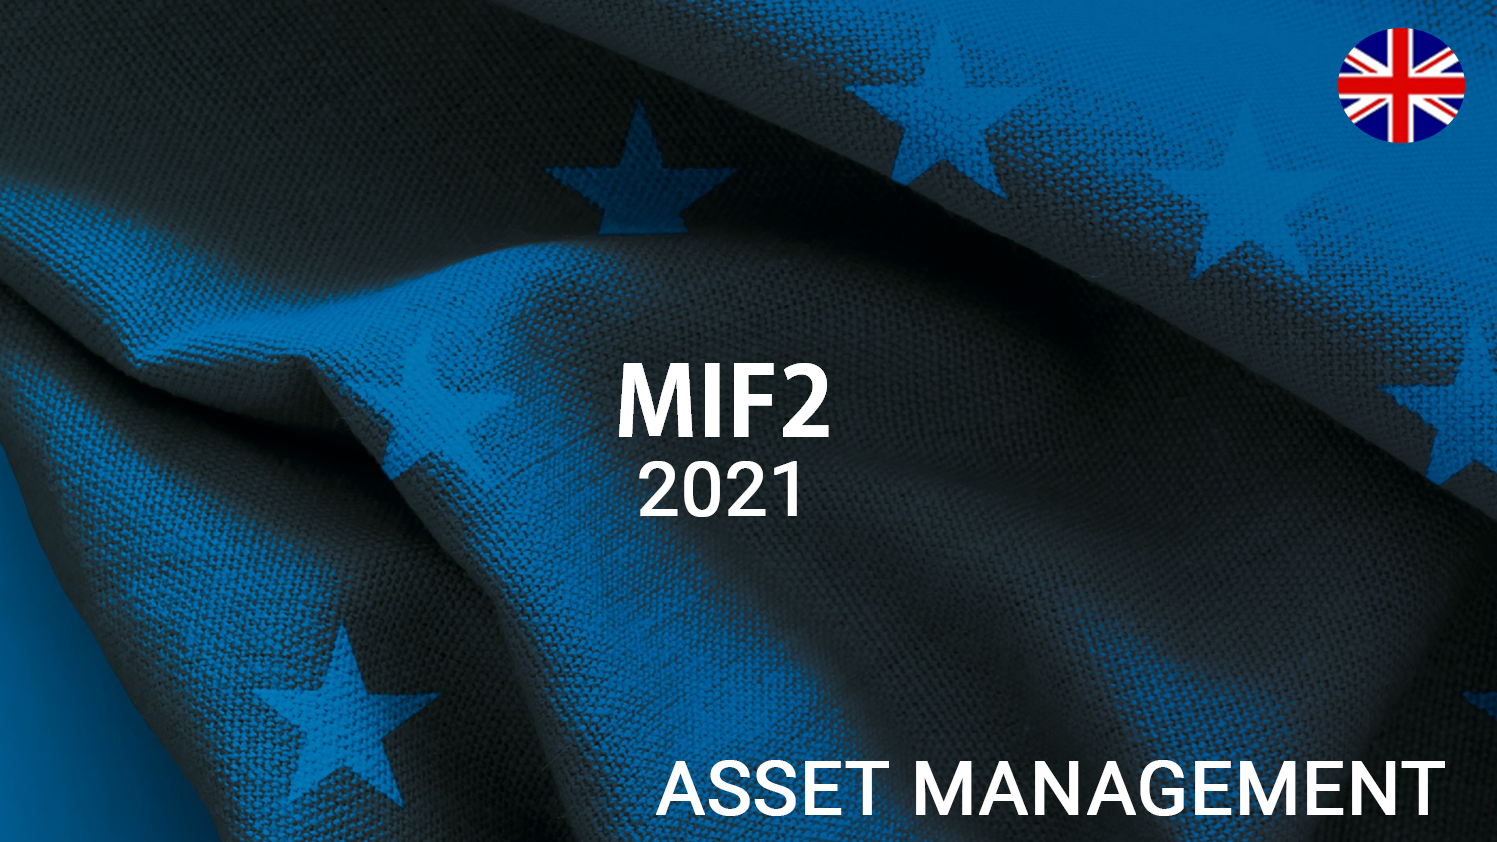 MIFID2 - Asset management 2021